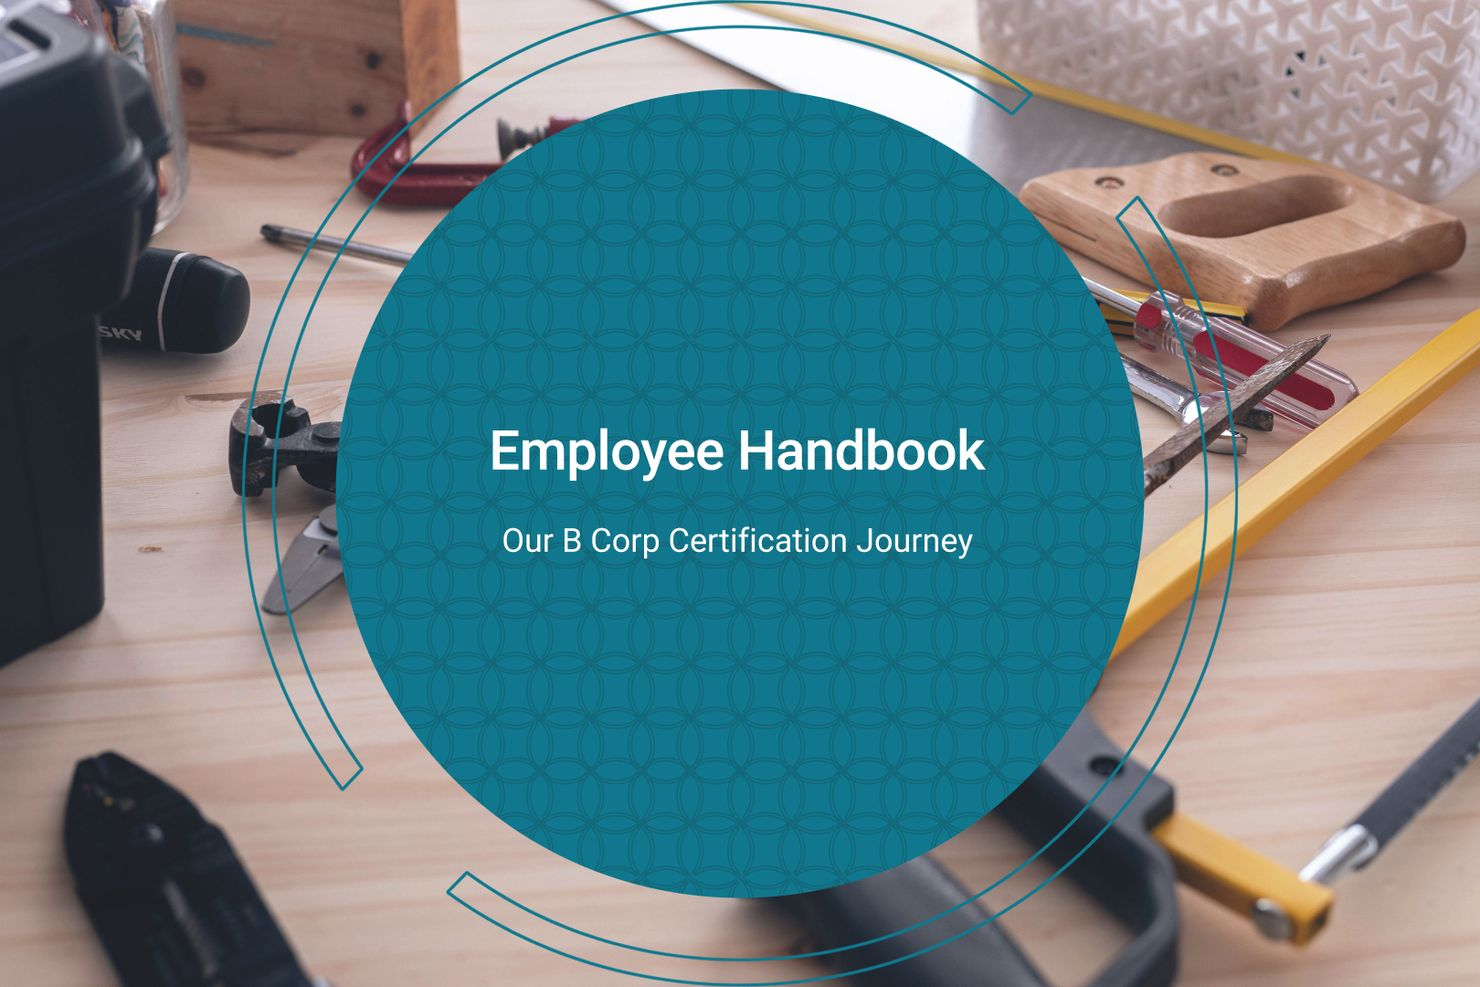 """a teal circle containing the text """"employee handbook"""" overlays a photo of a wooden workbench covered in tools"""